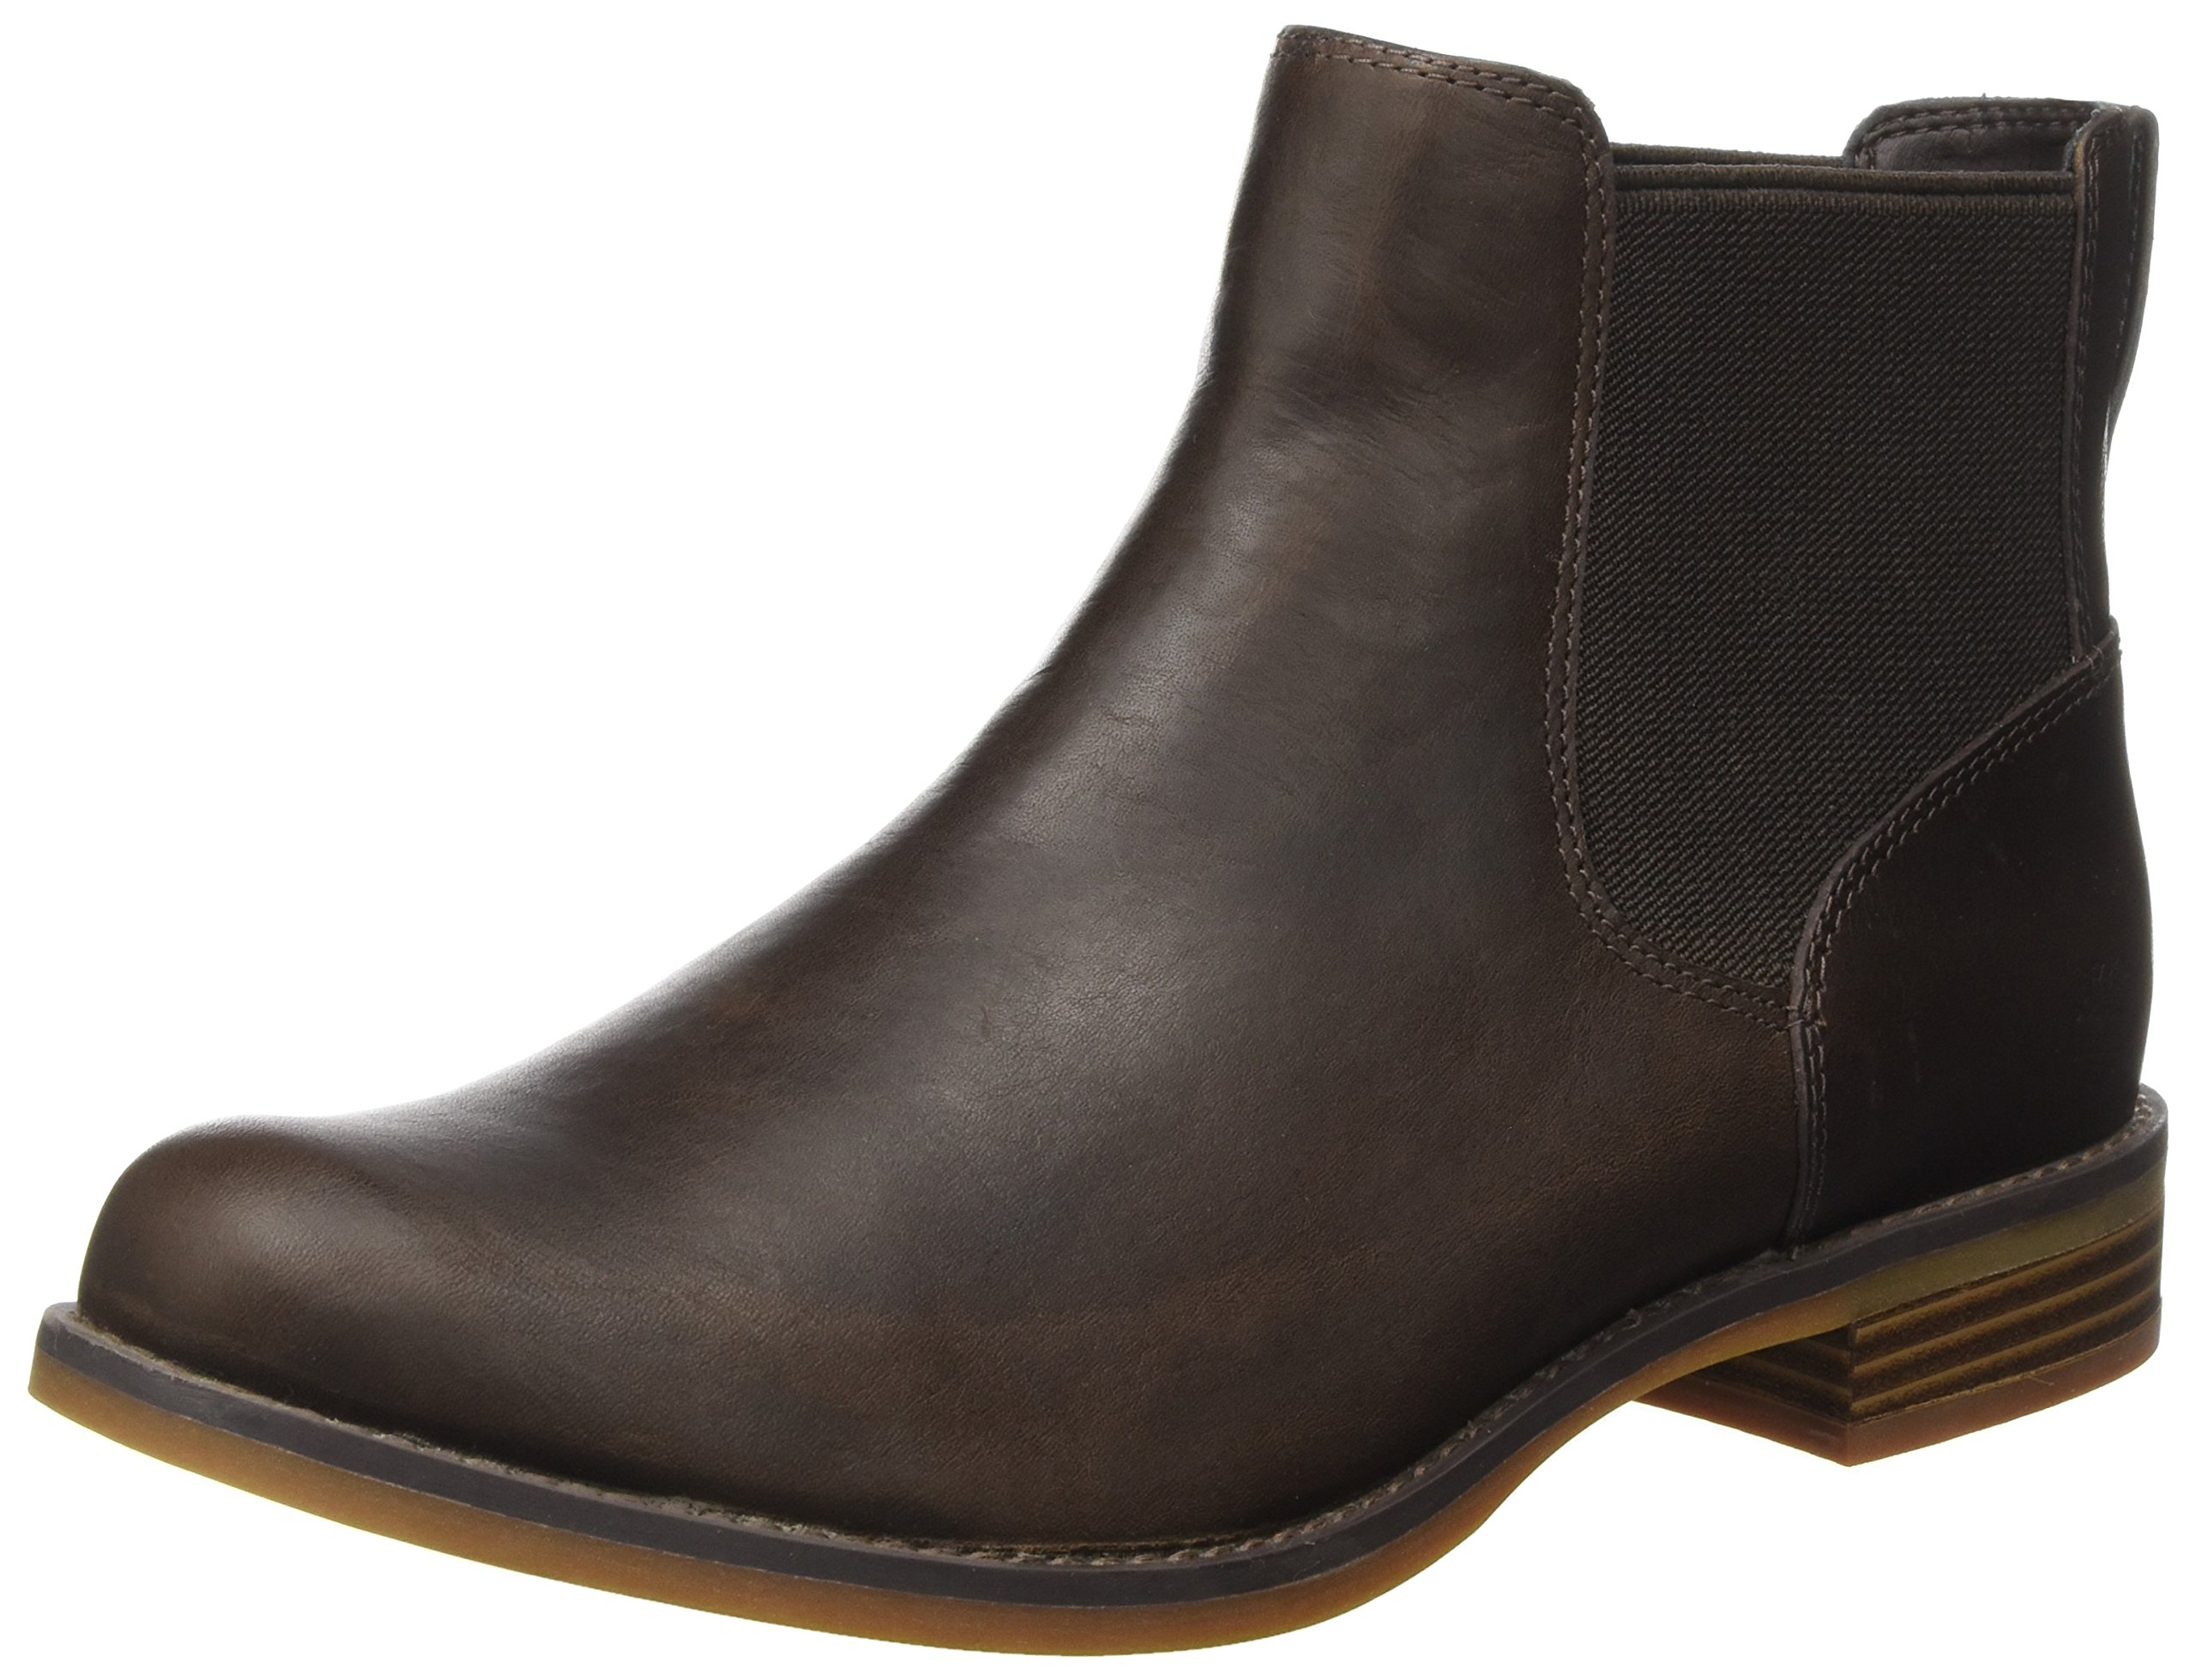 36 Femme On Chelsea mulch Marron Bottes Magby Timberland Pull wB78xAXq